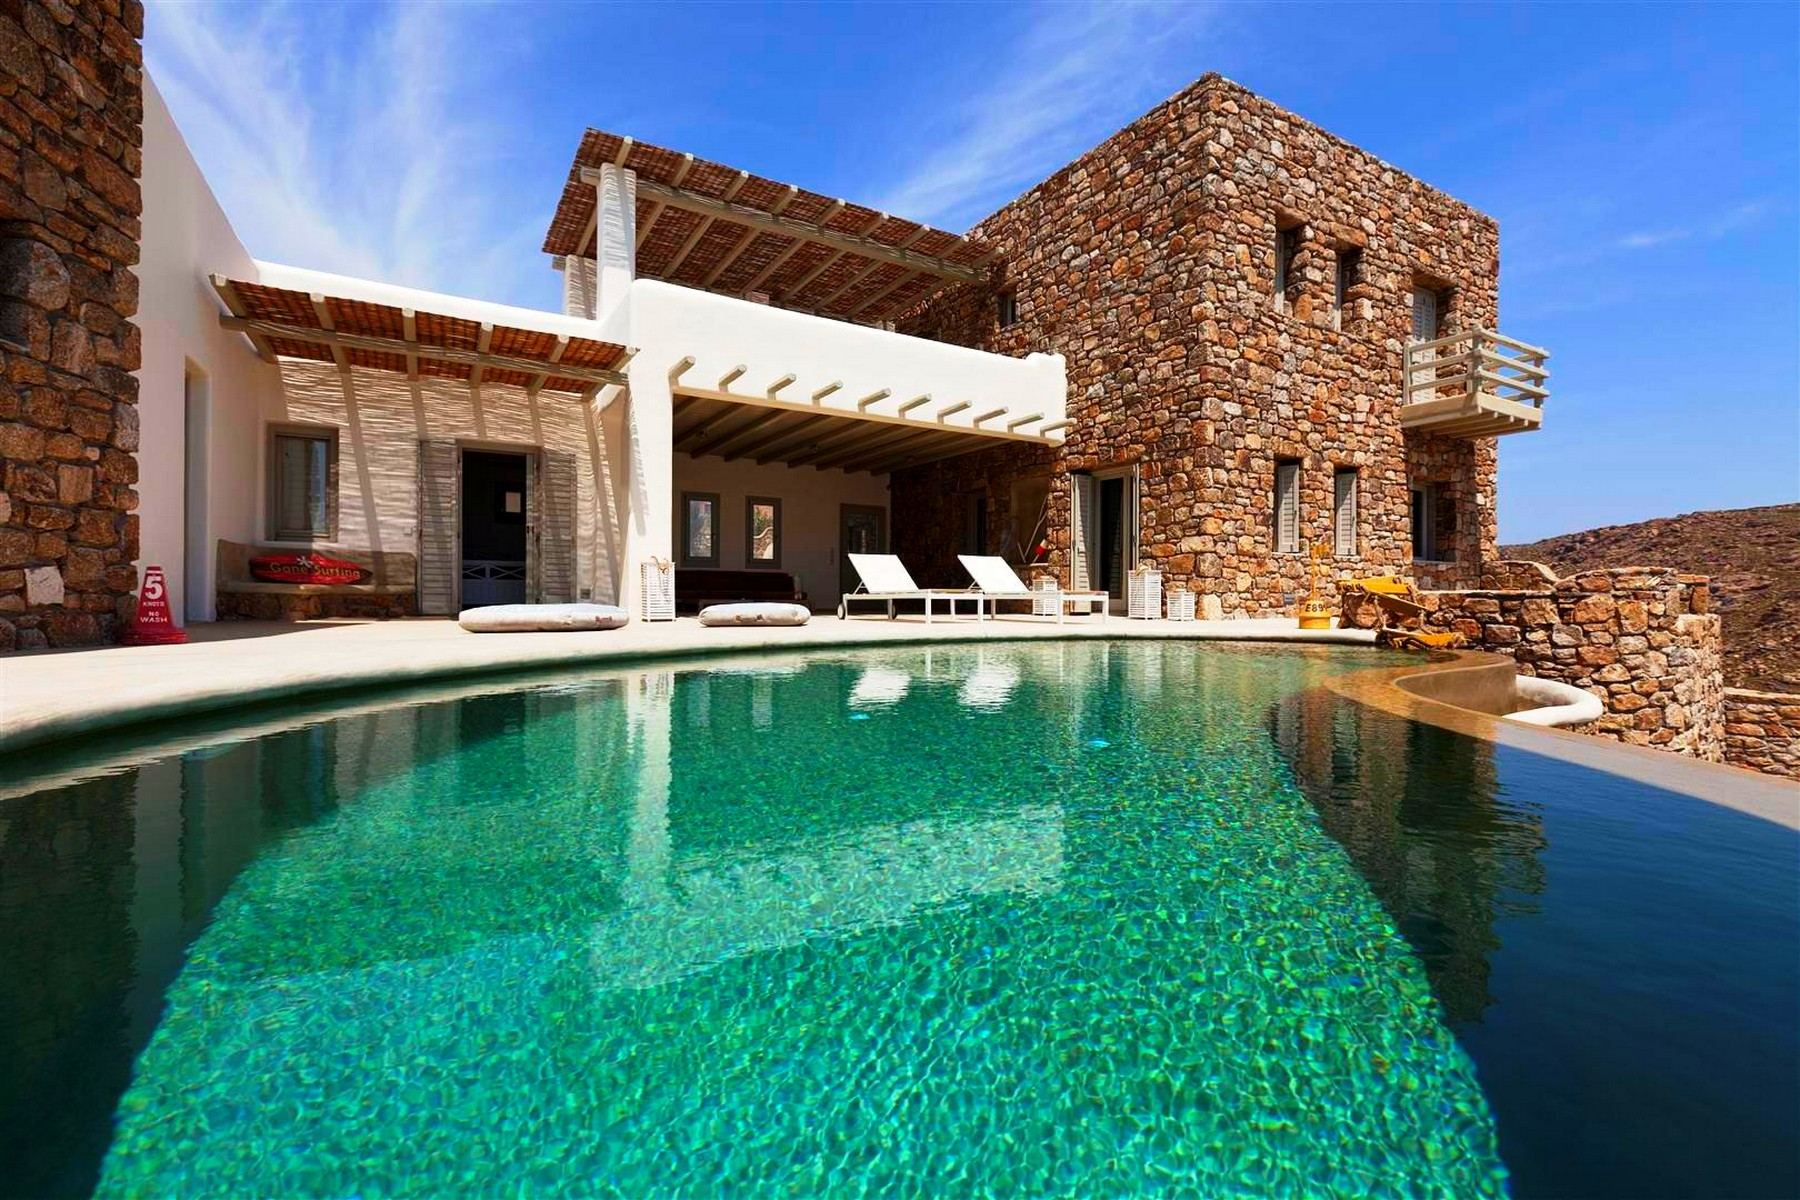 Single Family Home for Sale at Villa Ambrosia Mykonos, Cyclades, Aegean Mykonos, Southern Aegean 84600 Greece